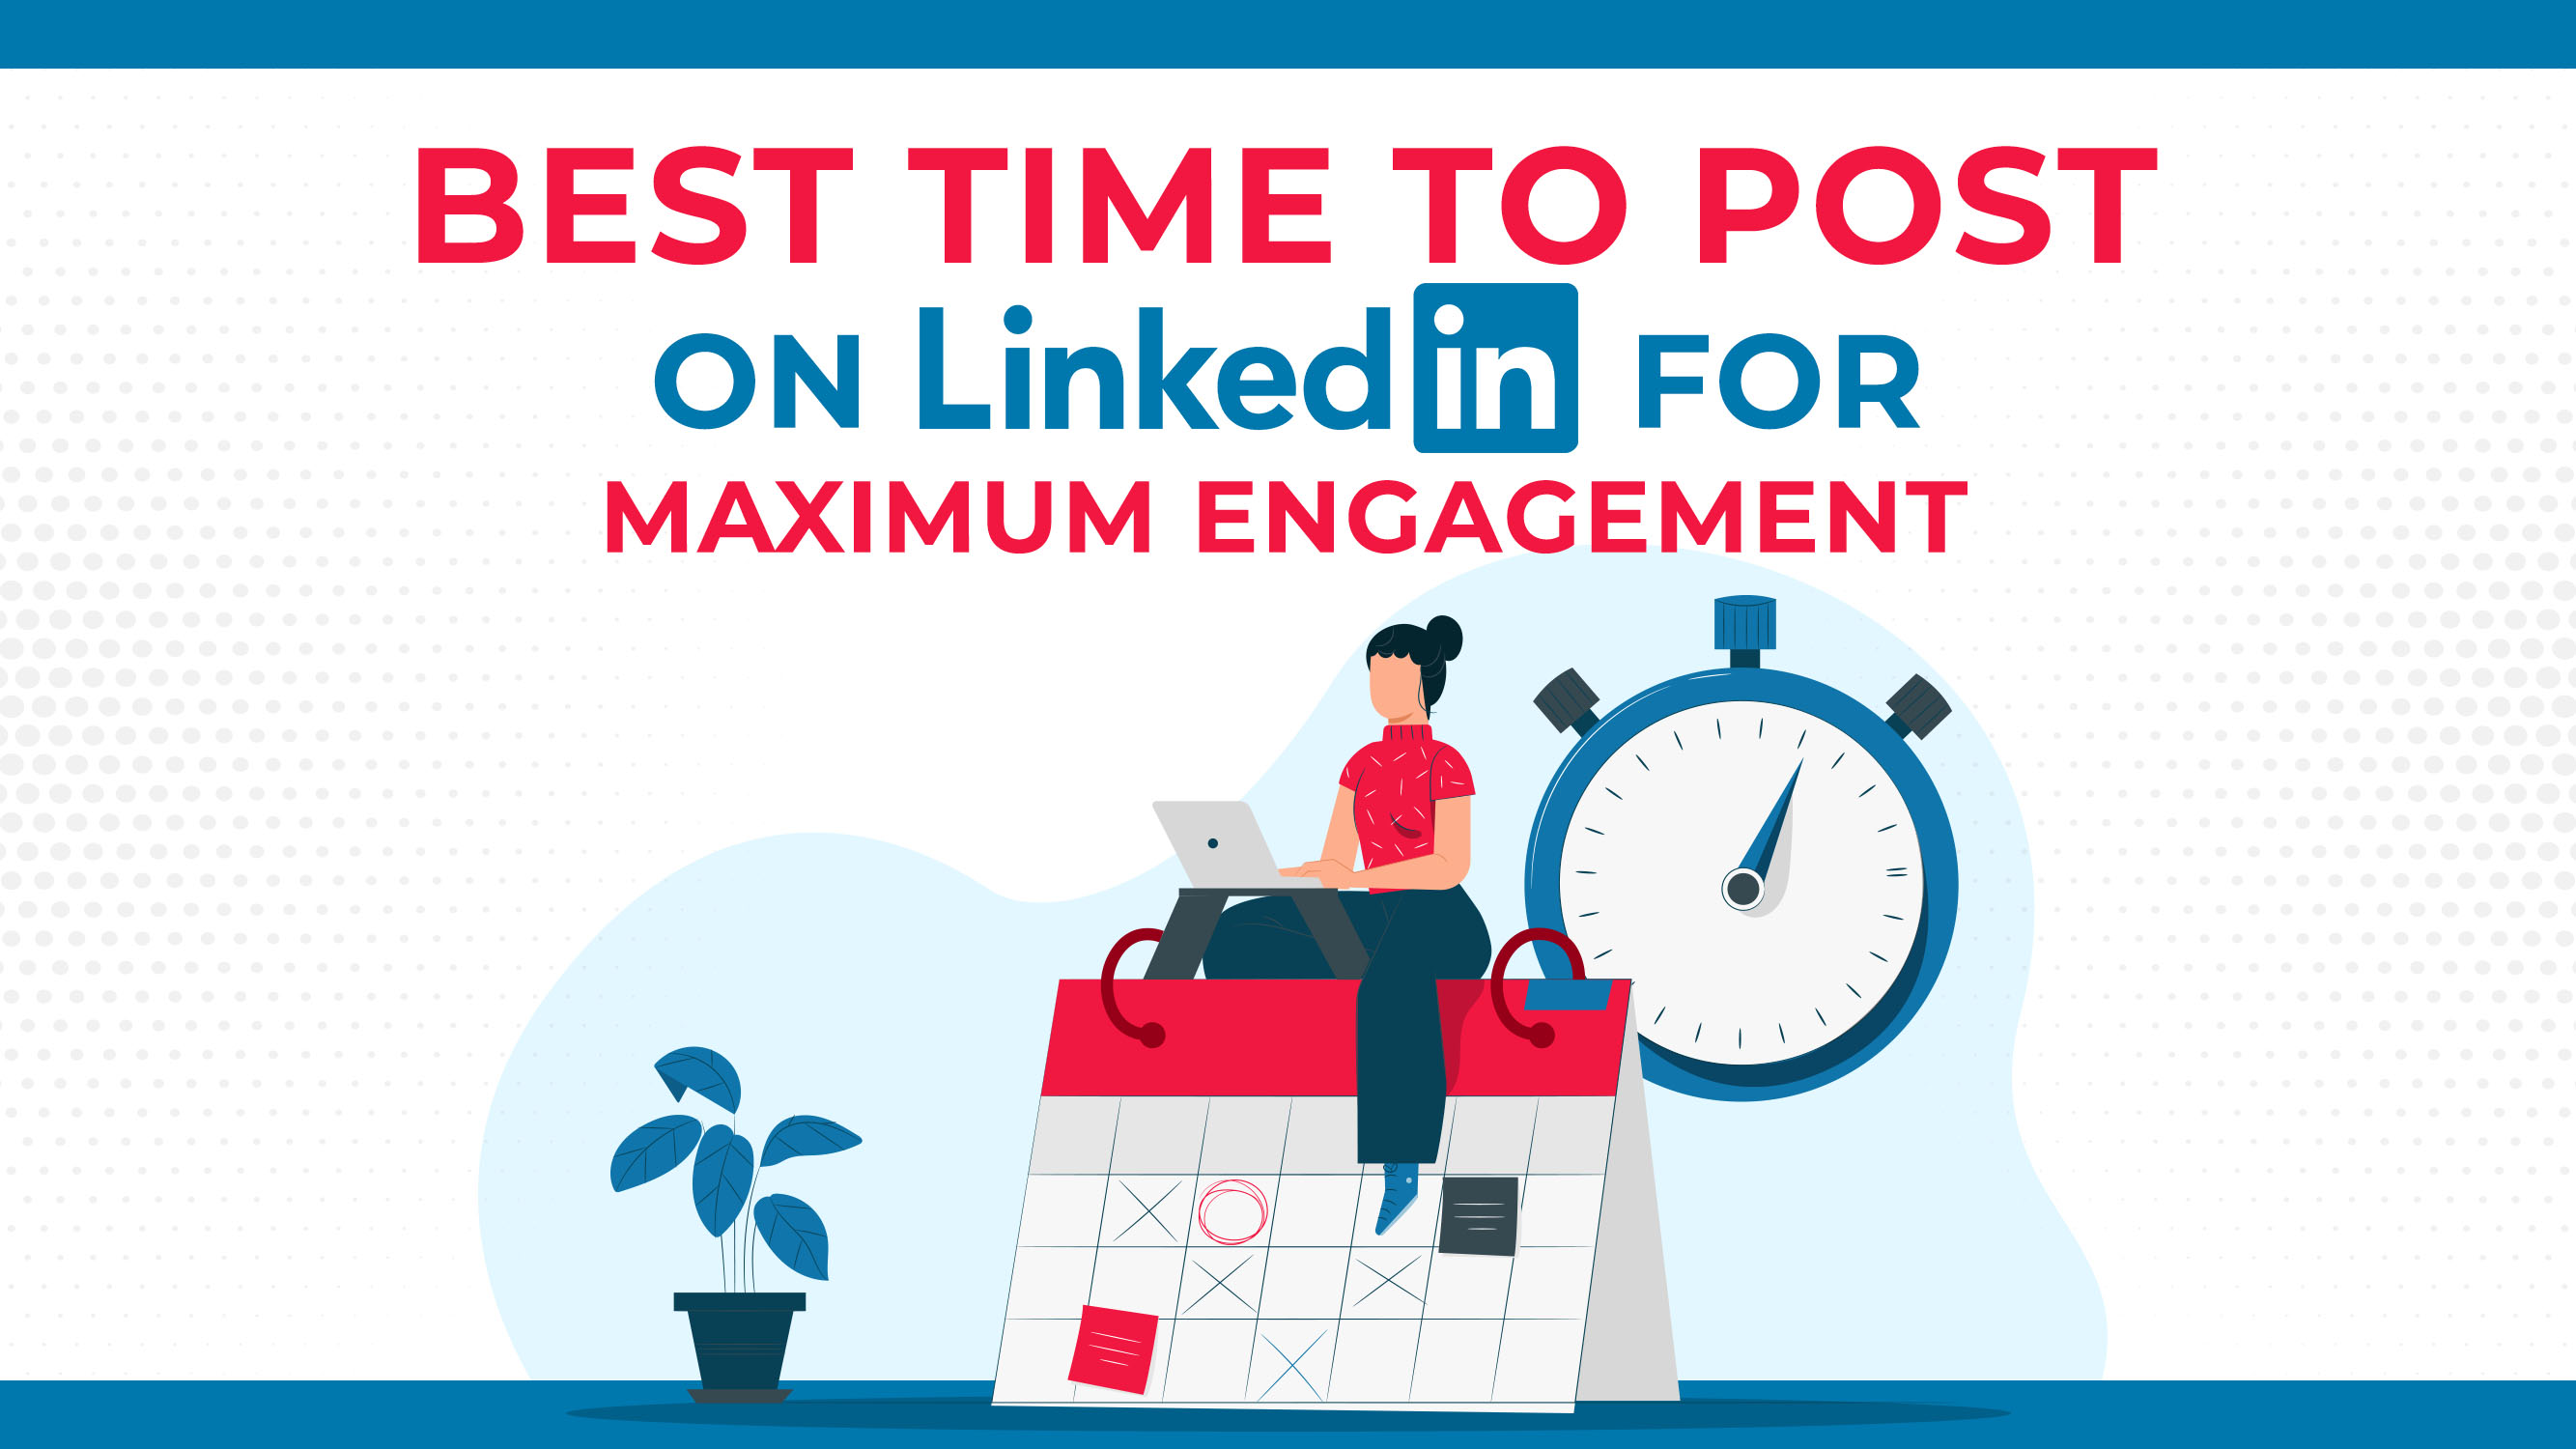 Best Time To Post On LinkedIn For Maximum Engagement